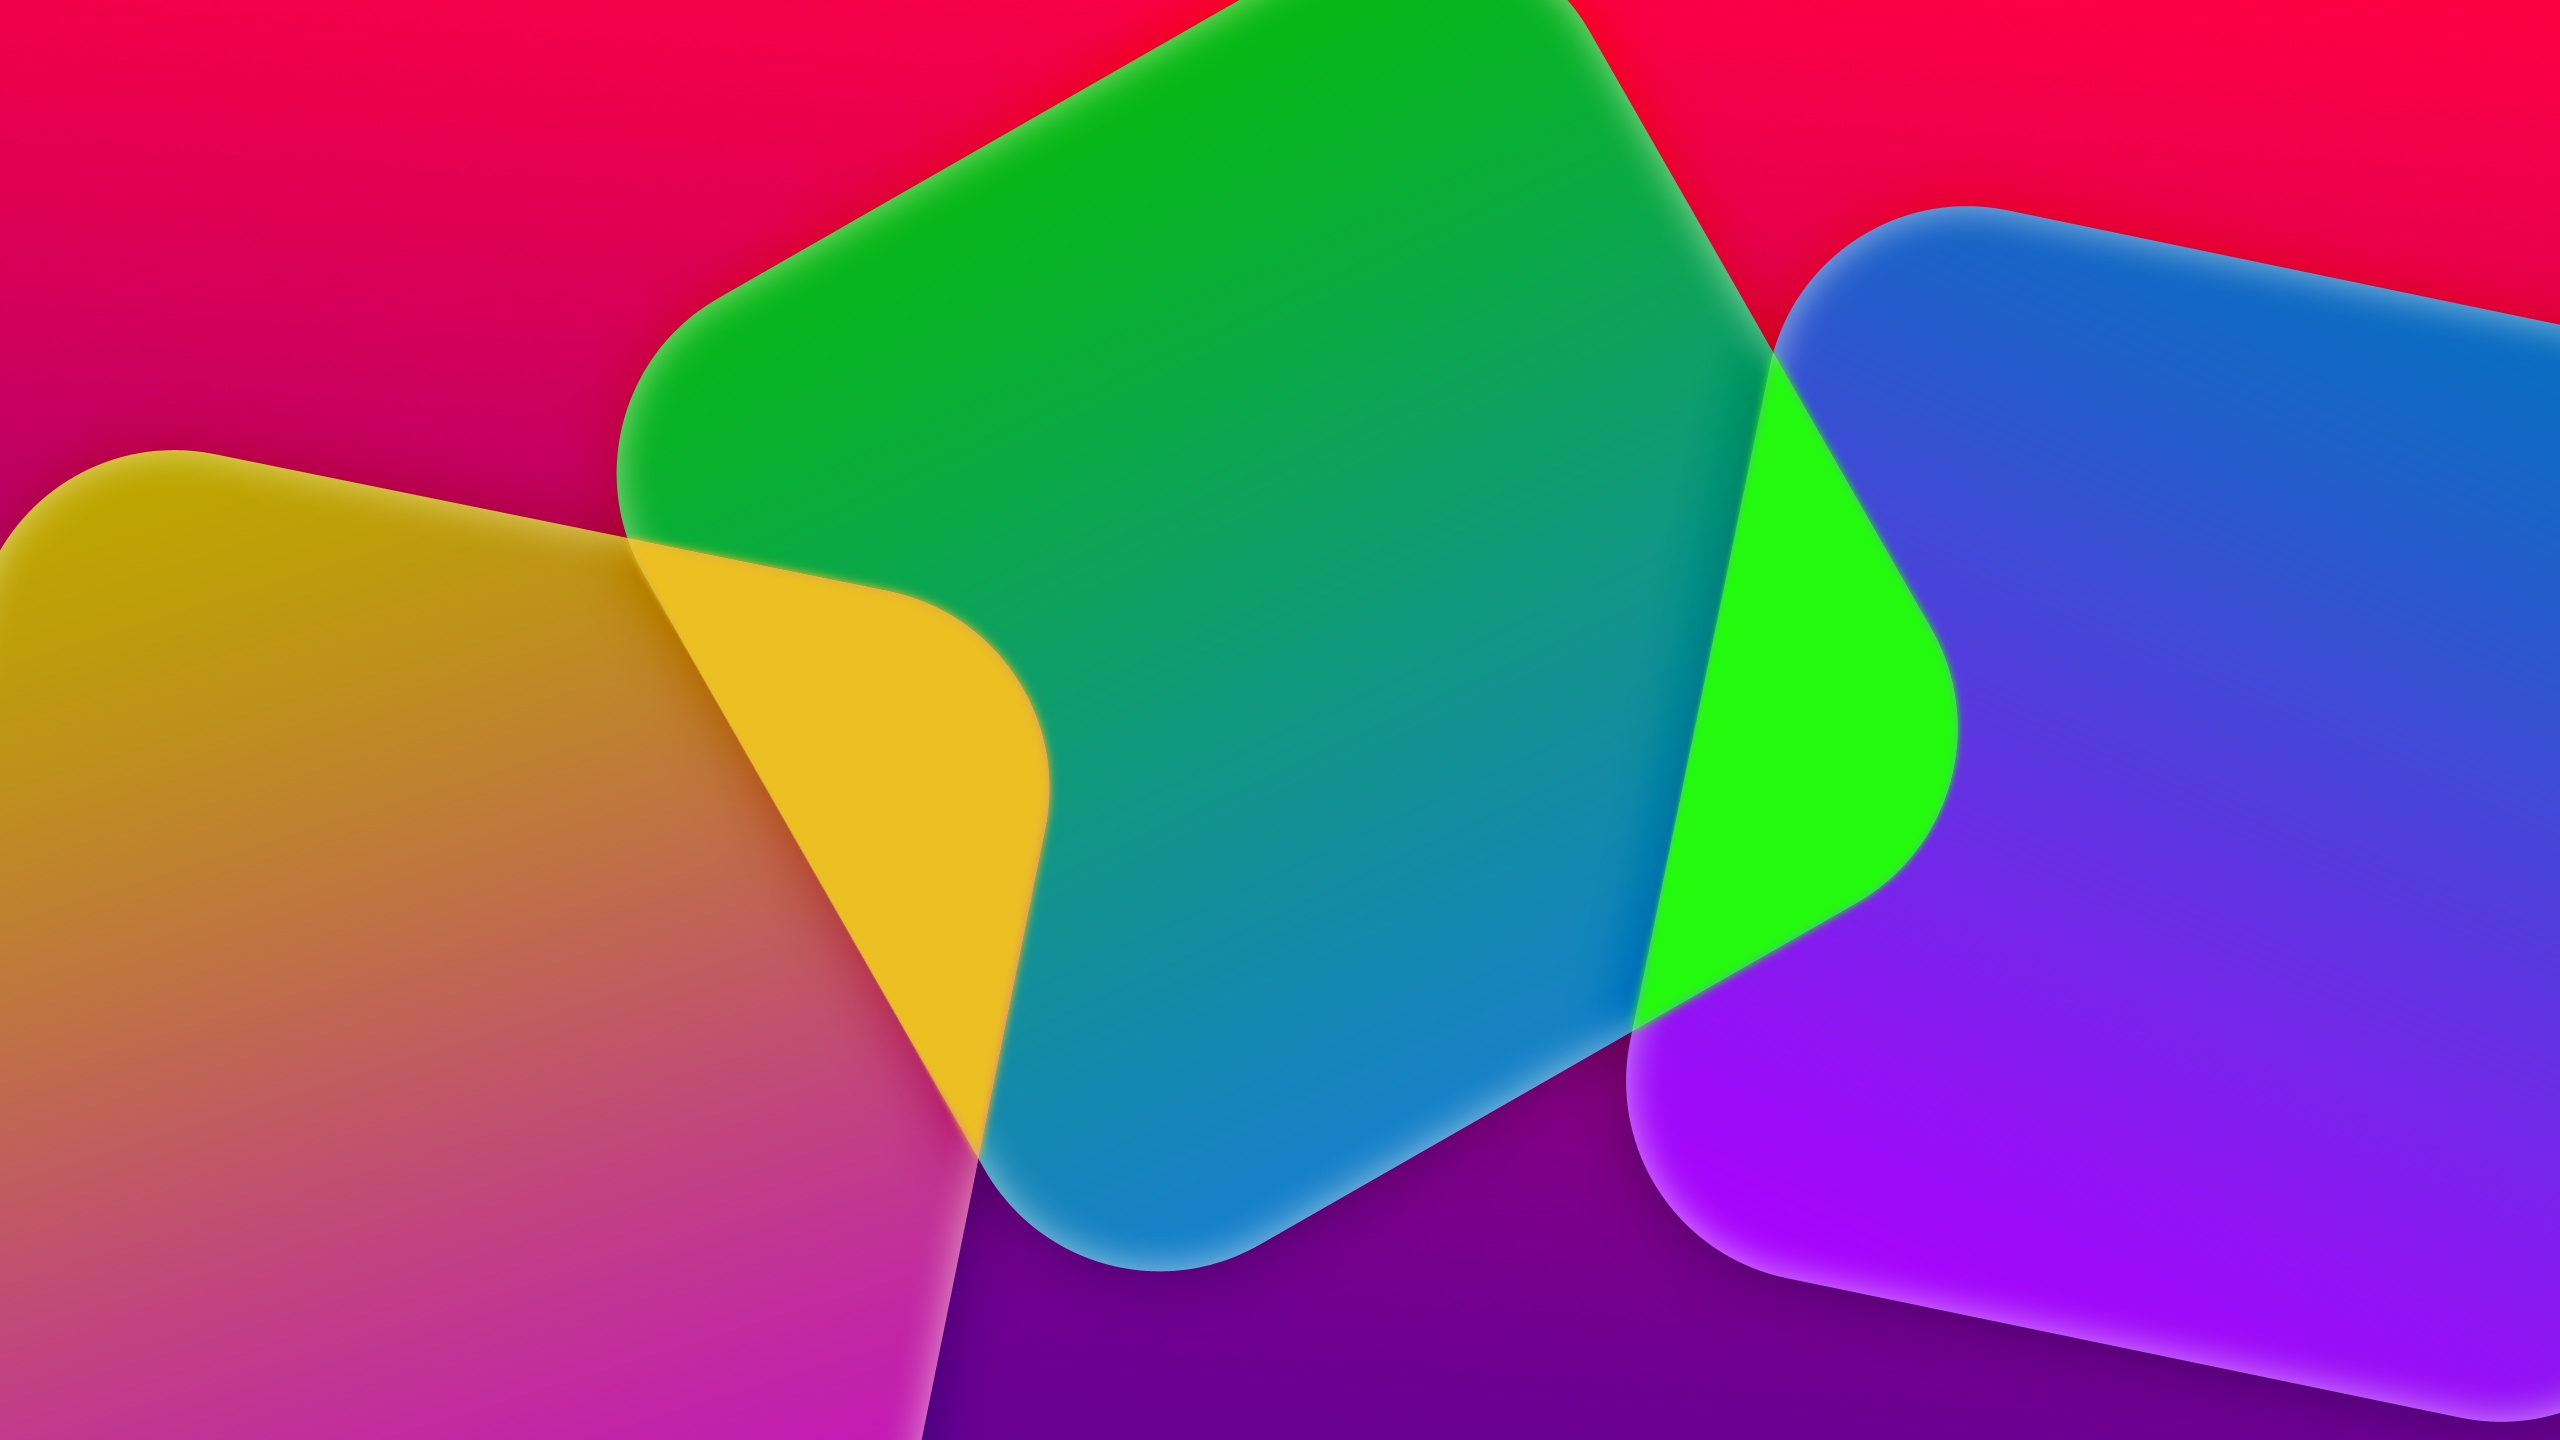 Simple Wallpaper Mac Abstract - Colorful-Squares-Wallpaper-For-PC  Perfect Image Reference_886826.jpg